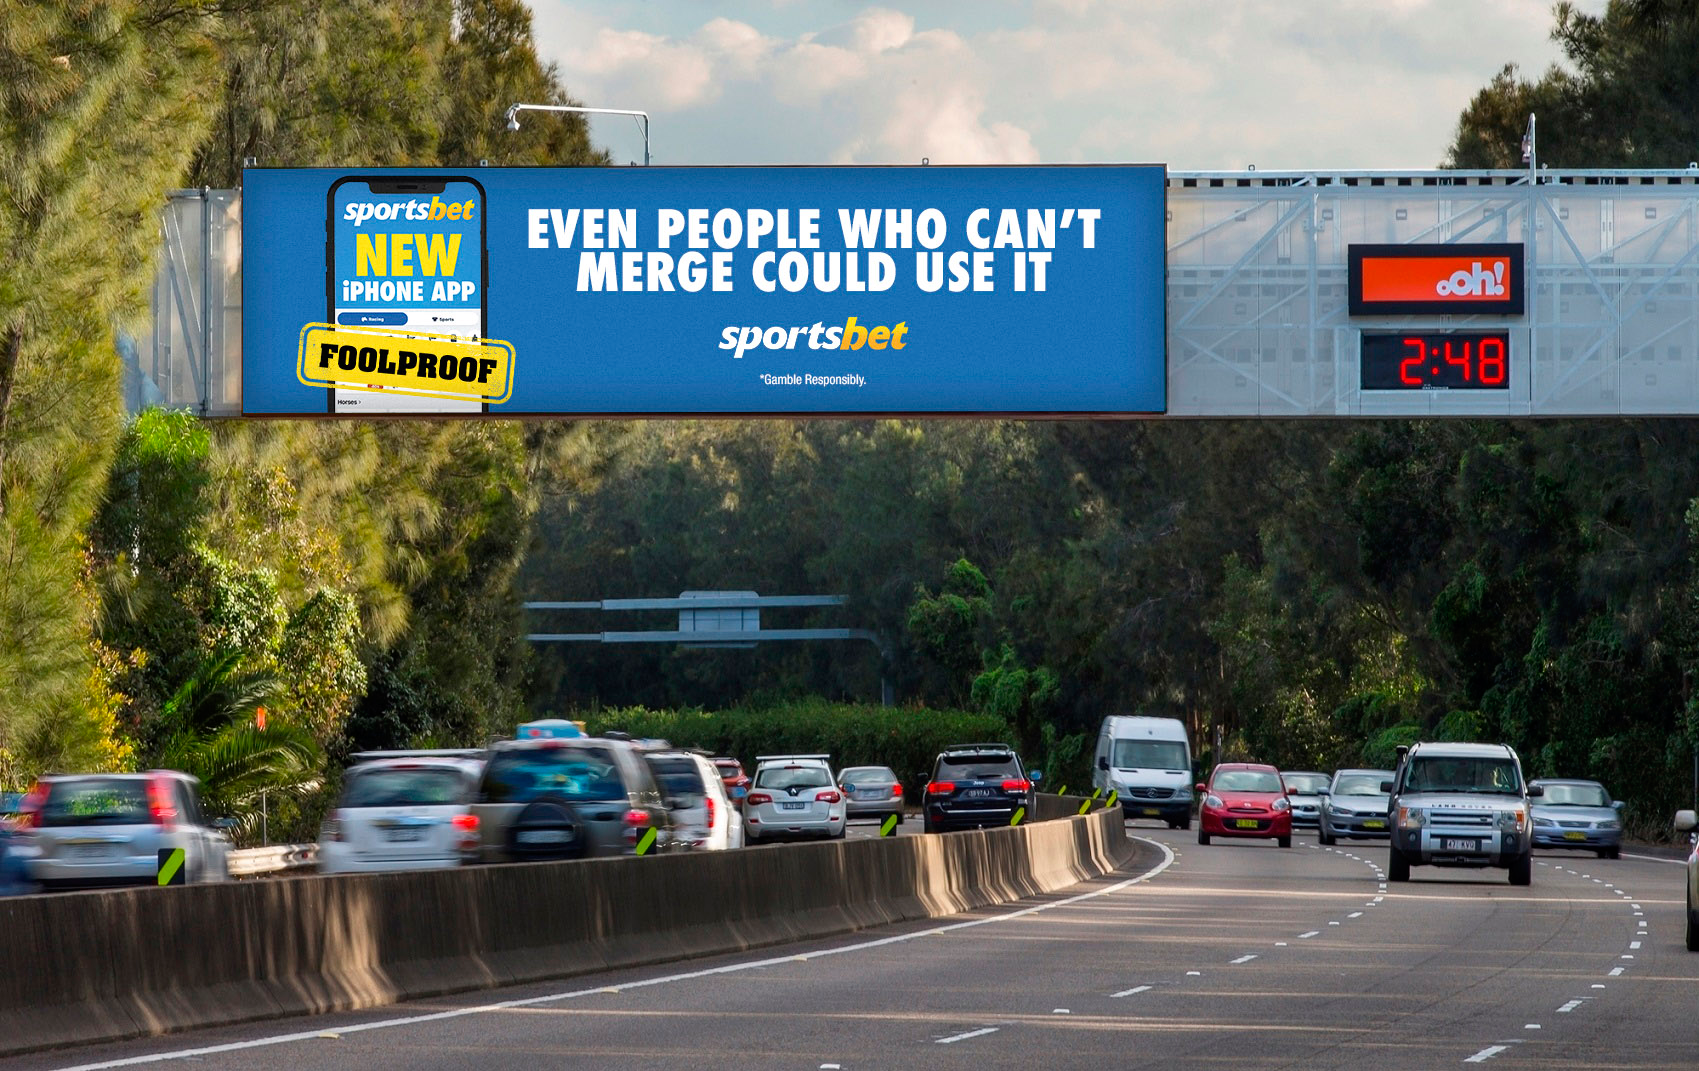 Sportsbet puts its foolproof iPhone app to the test in major integrated campaign via Emotive